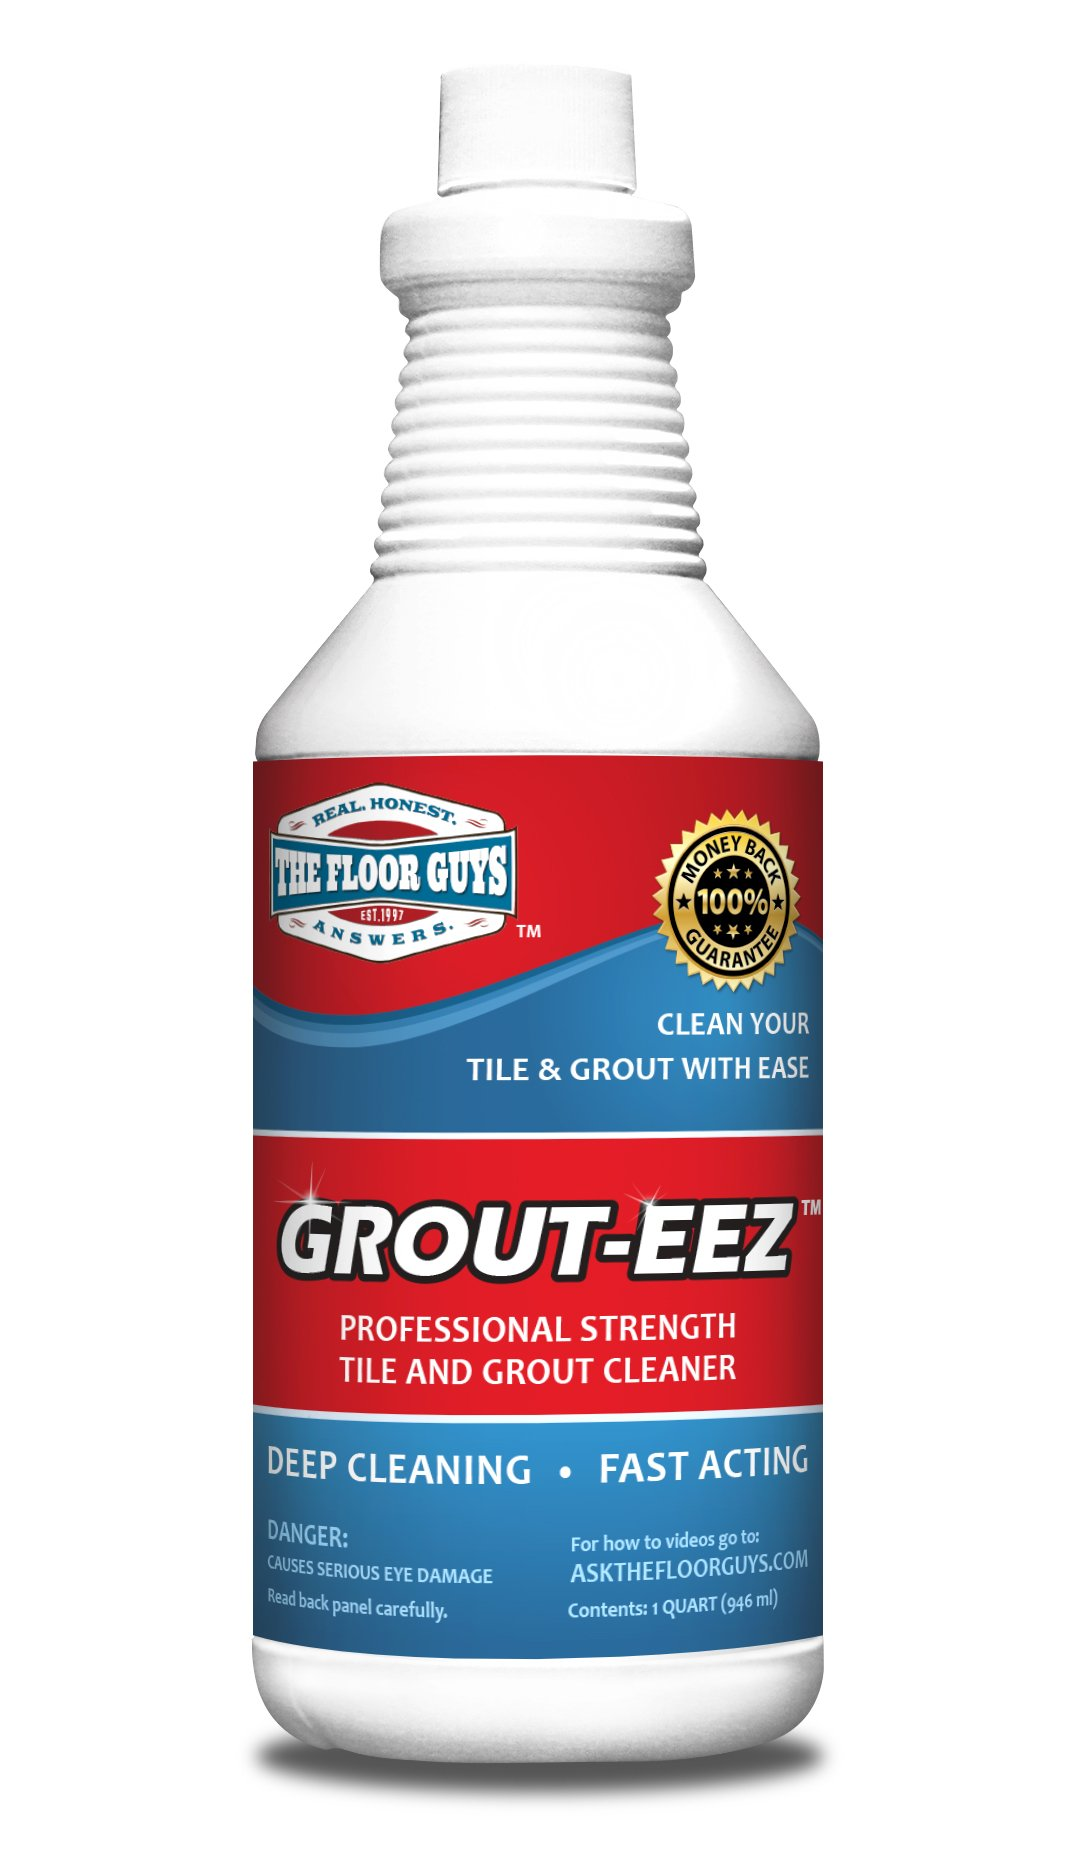 IT JUST WORKS! Grout-Eez Super Heavy-Duty Grout Cleaner. Easy and Safe To Use. Destroys Dirt and Grime With Ease. Even Safe For Colored Grout. The Floor Guys. by The Floor Guys